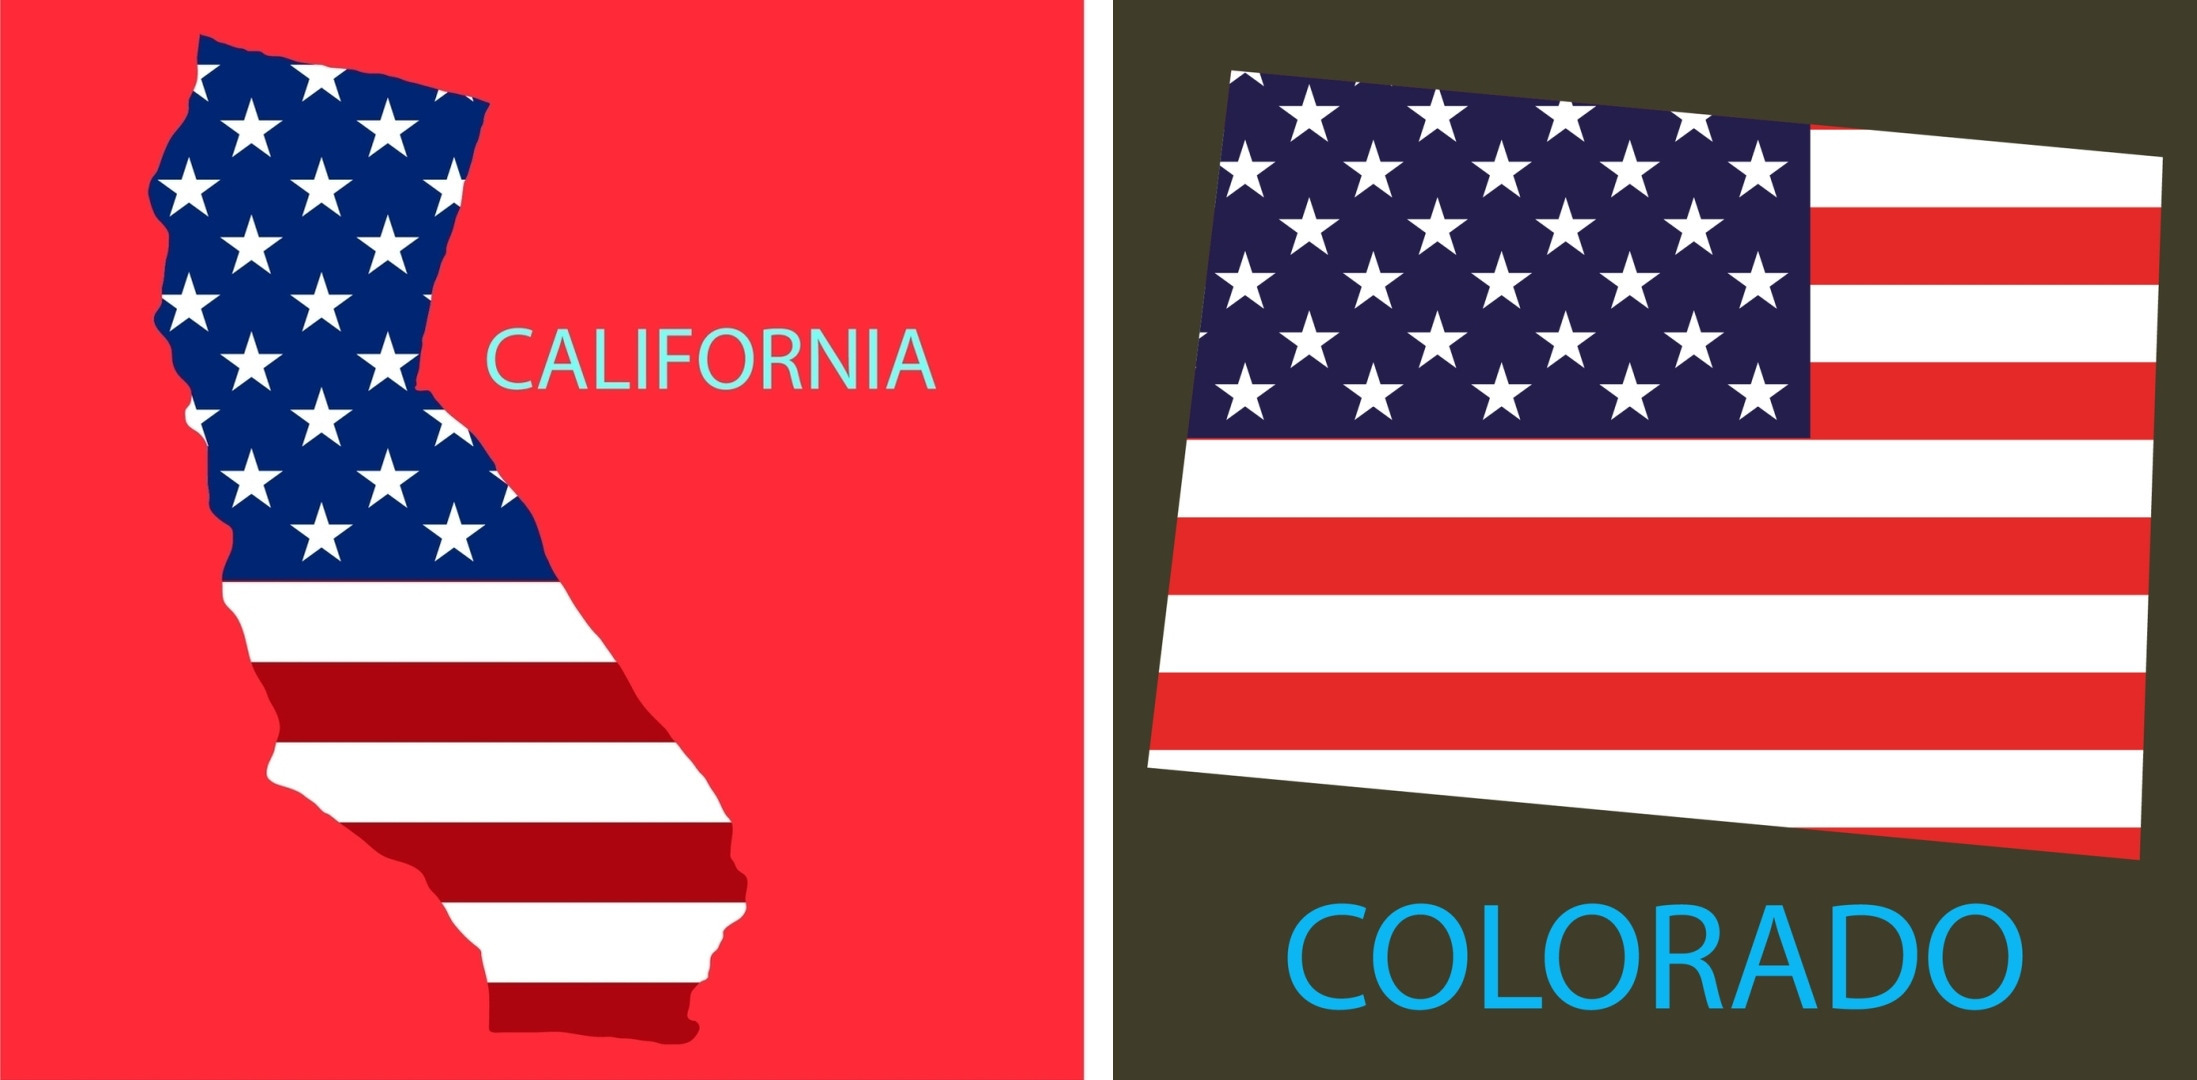 Art Shuttle California – Colorado is Leaving on March 29